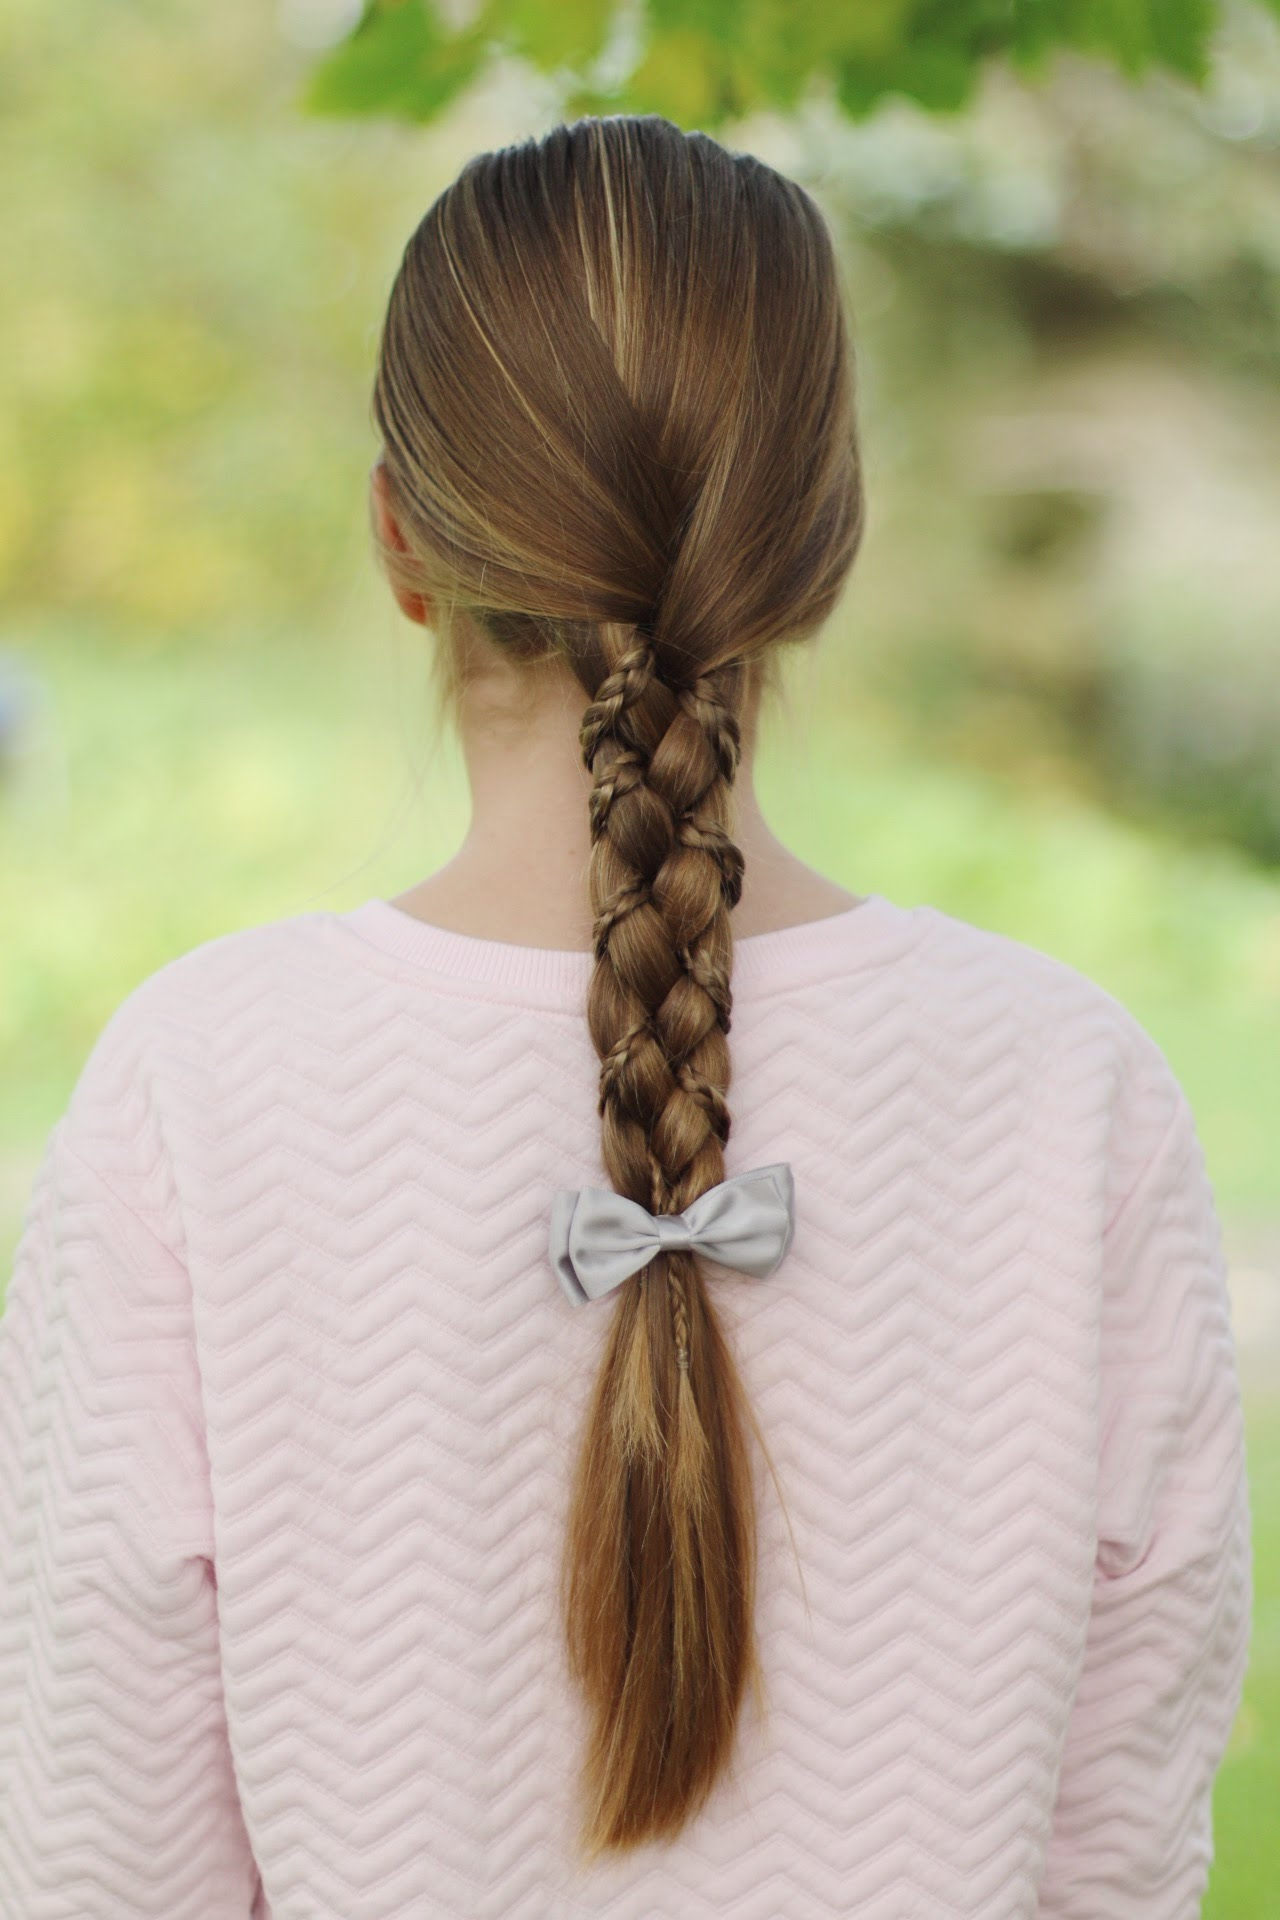 Widely Used Three Strand Side Braided Hairstyles For 40 Braid Styles For Women (View 20 of 20)